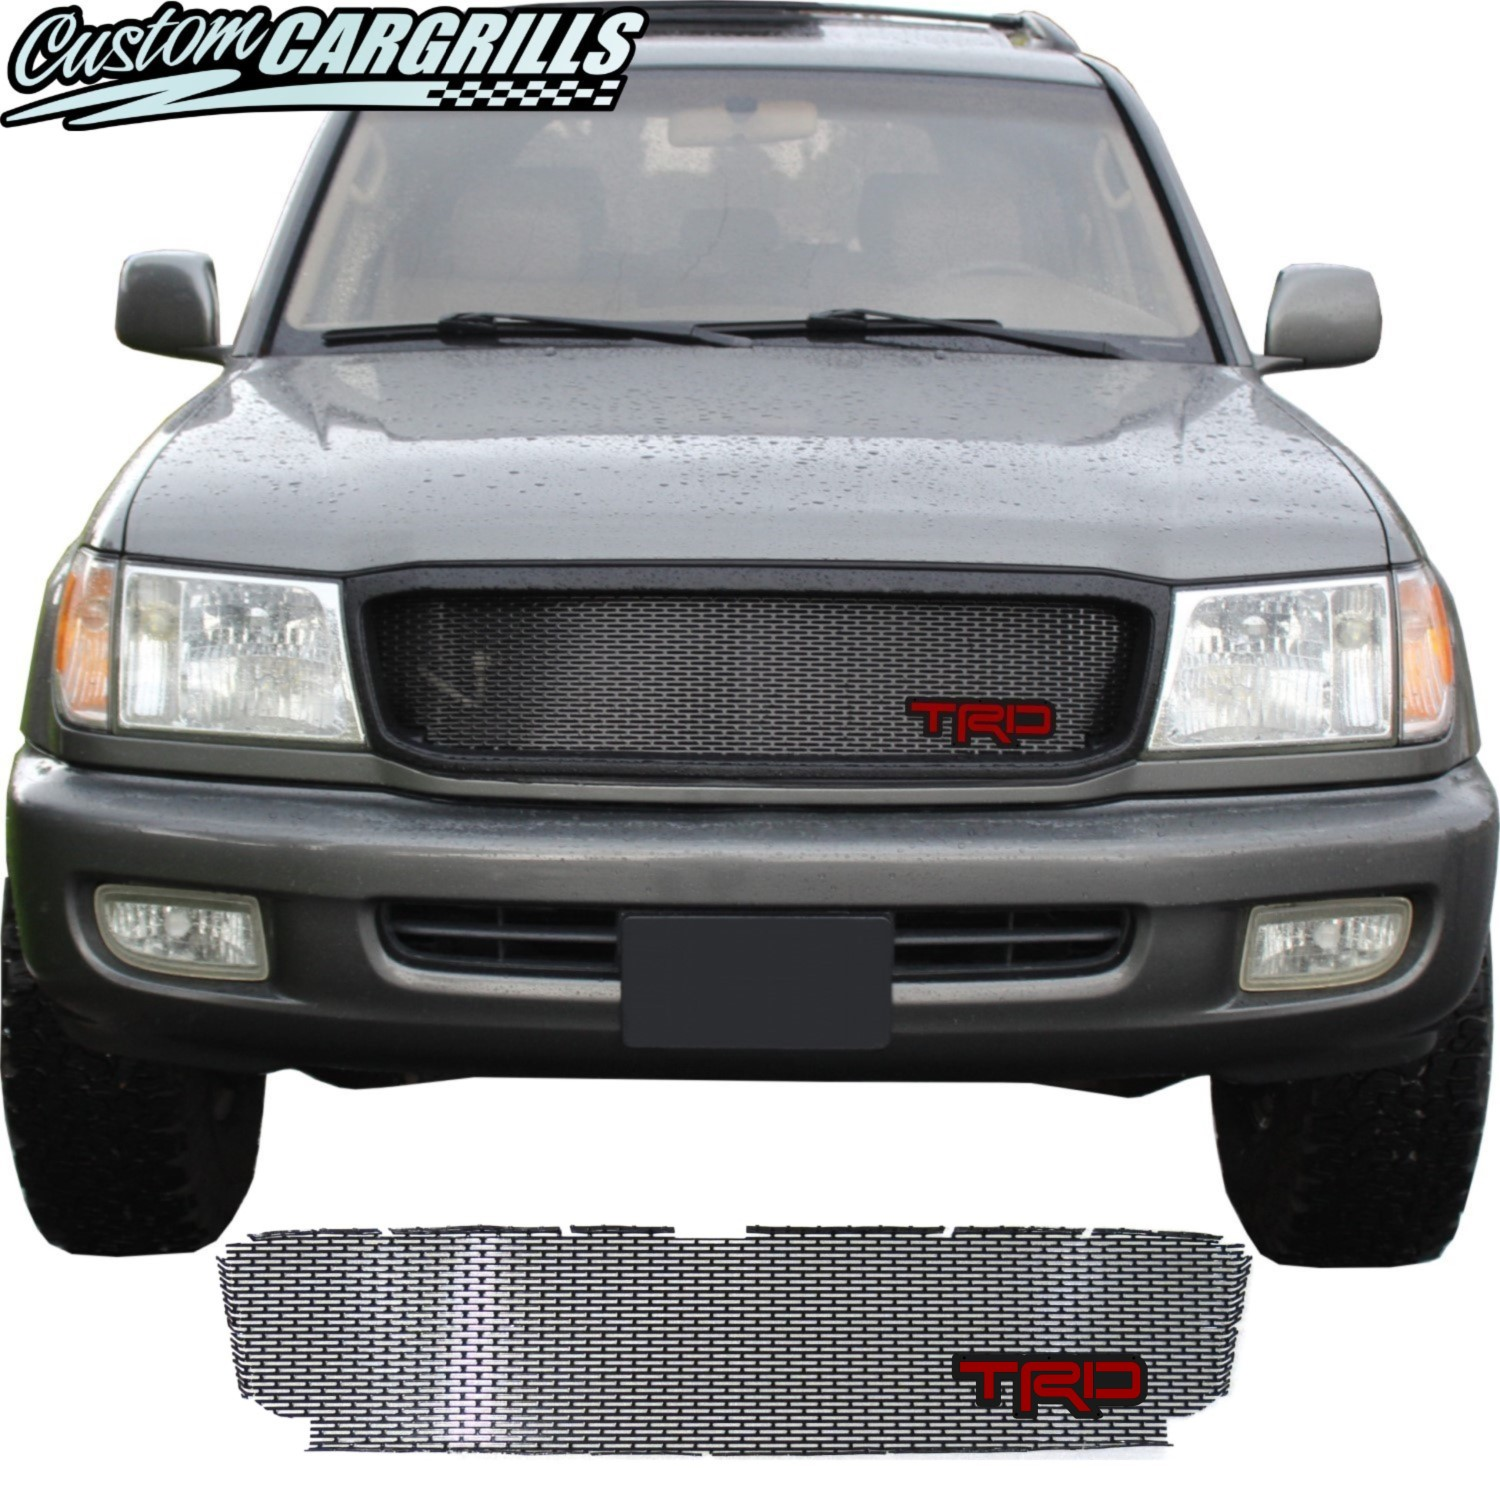 1998 - 2002 Toyota Land Cruiser Series 100 Grill Mesh and TRD Emblem